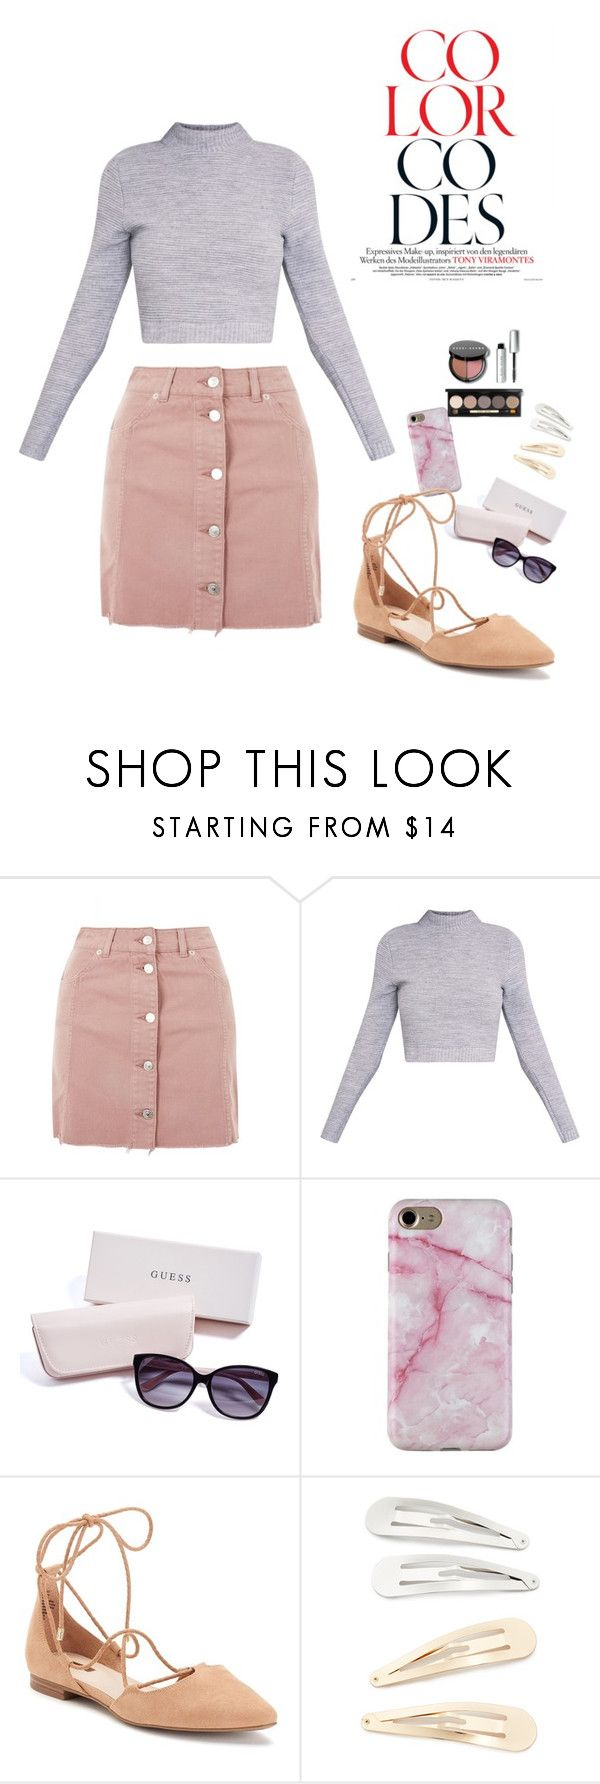 """""""Color Codes"""" by baackehope-1 on Polyvore featuring Topshop, GUESS, Jennifer Lopez, Kitsch and Bobbi Brown Cosmetics"""